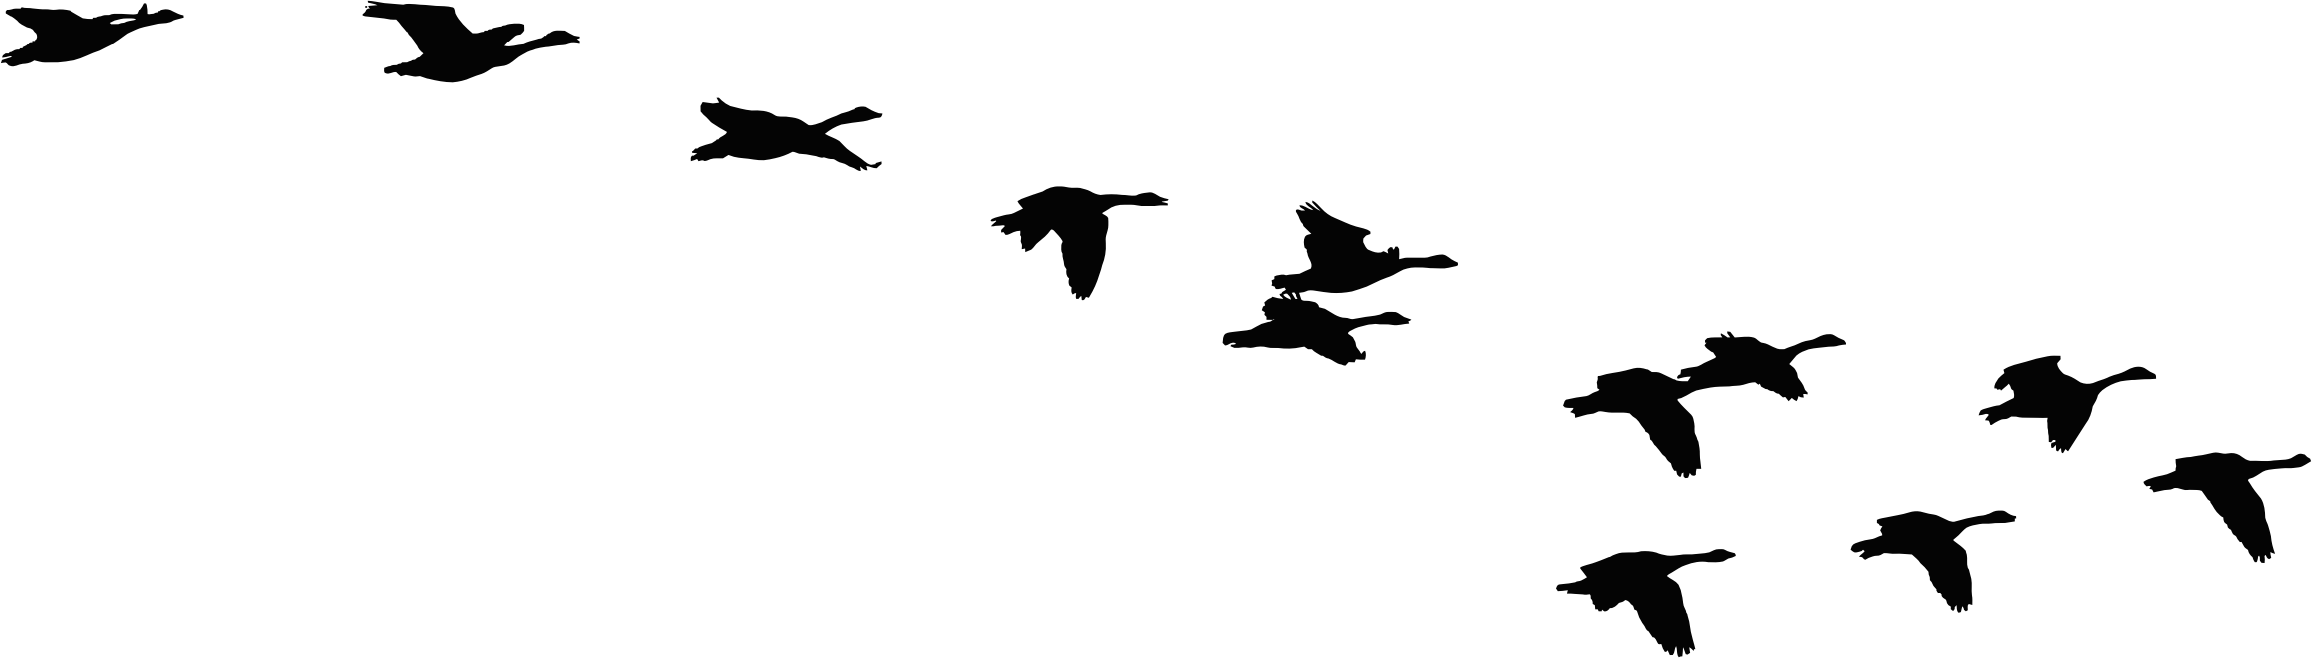 Flock of birds silhouette png - photo#19